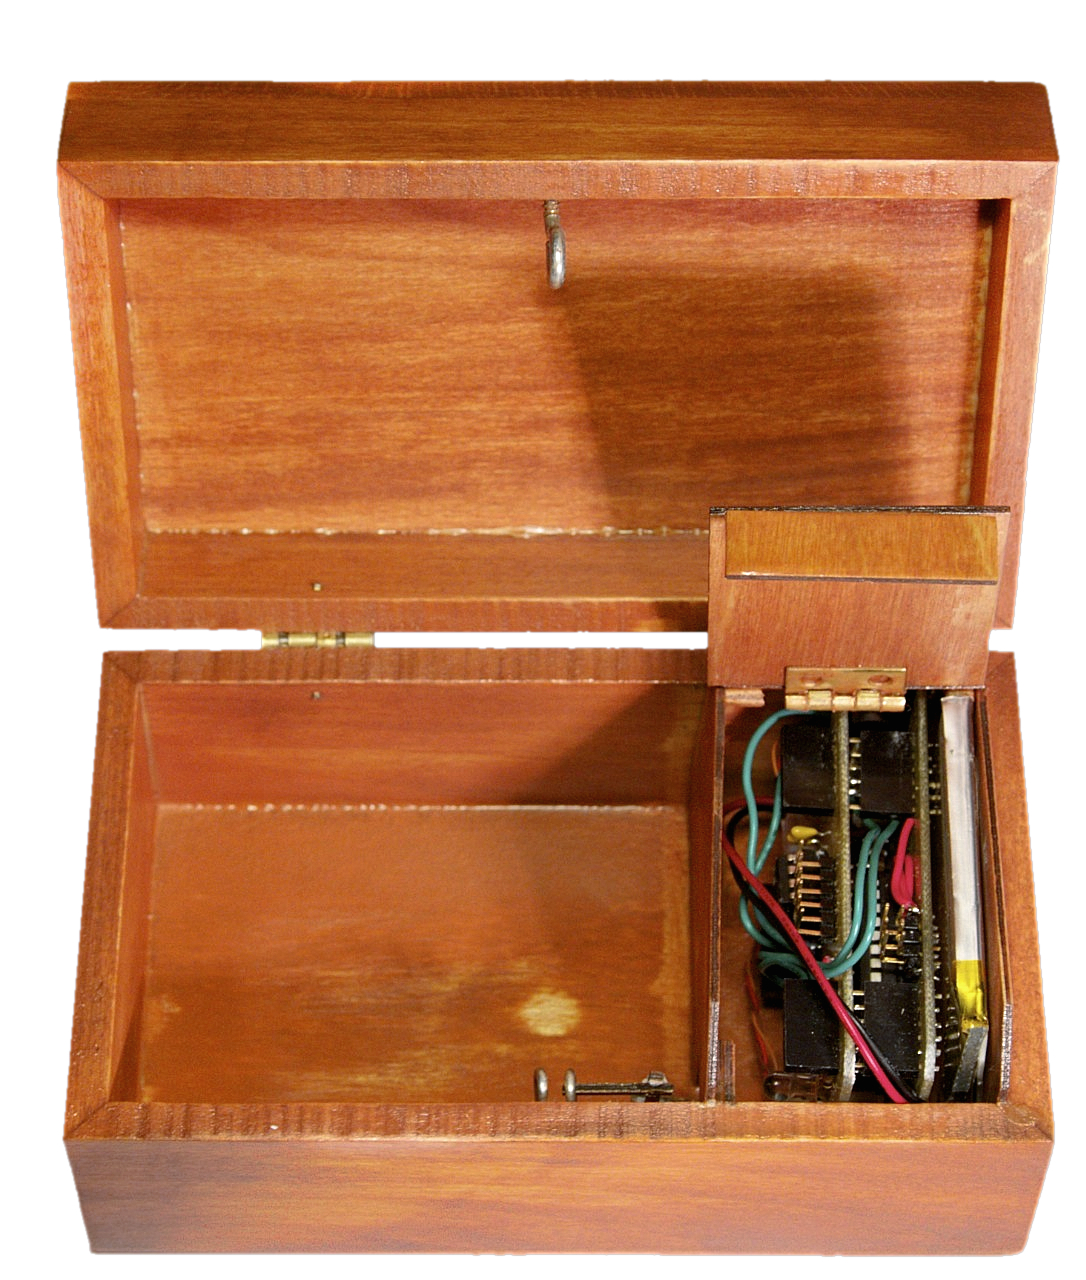 Box with a Music Lock